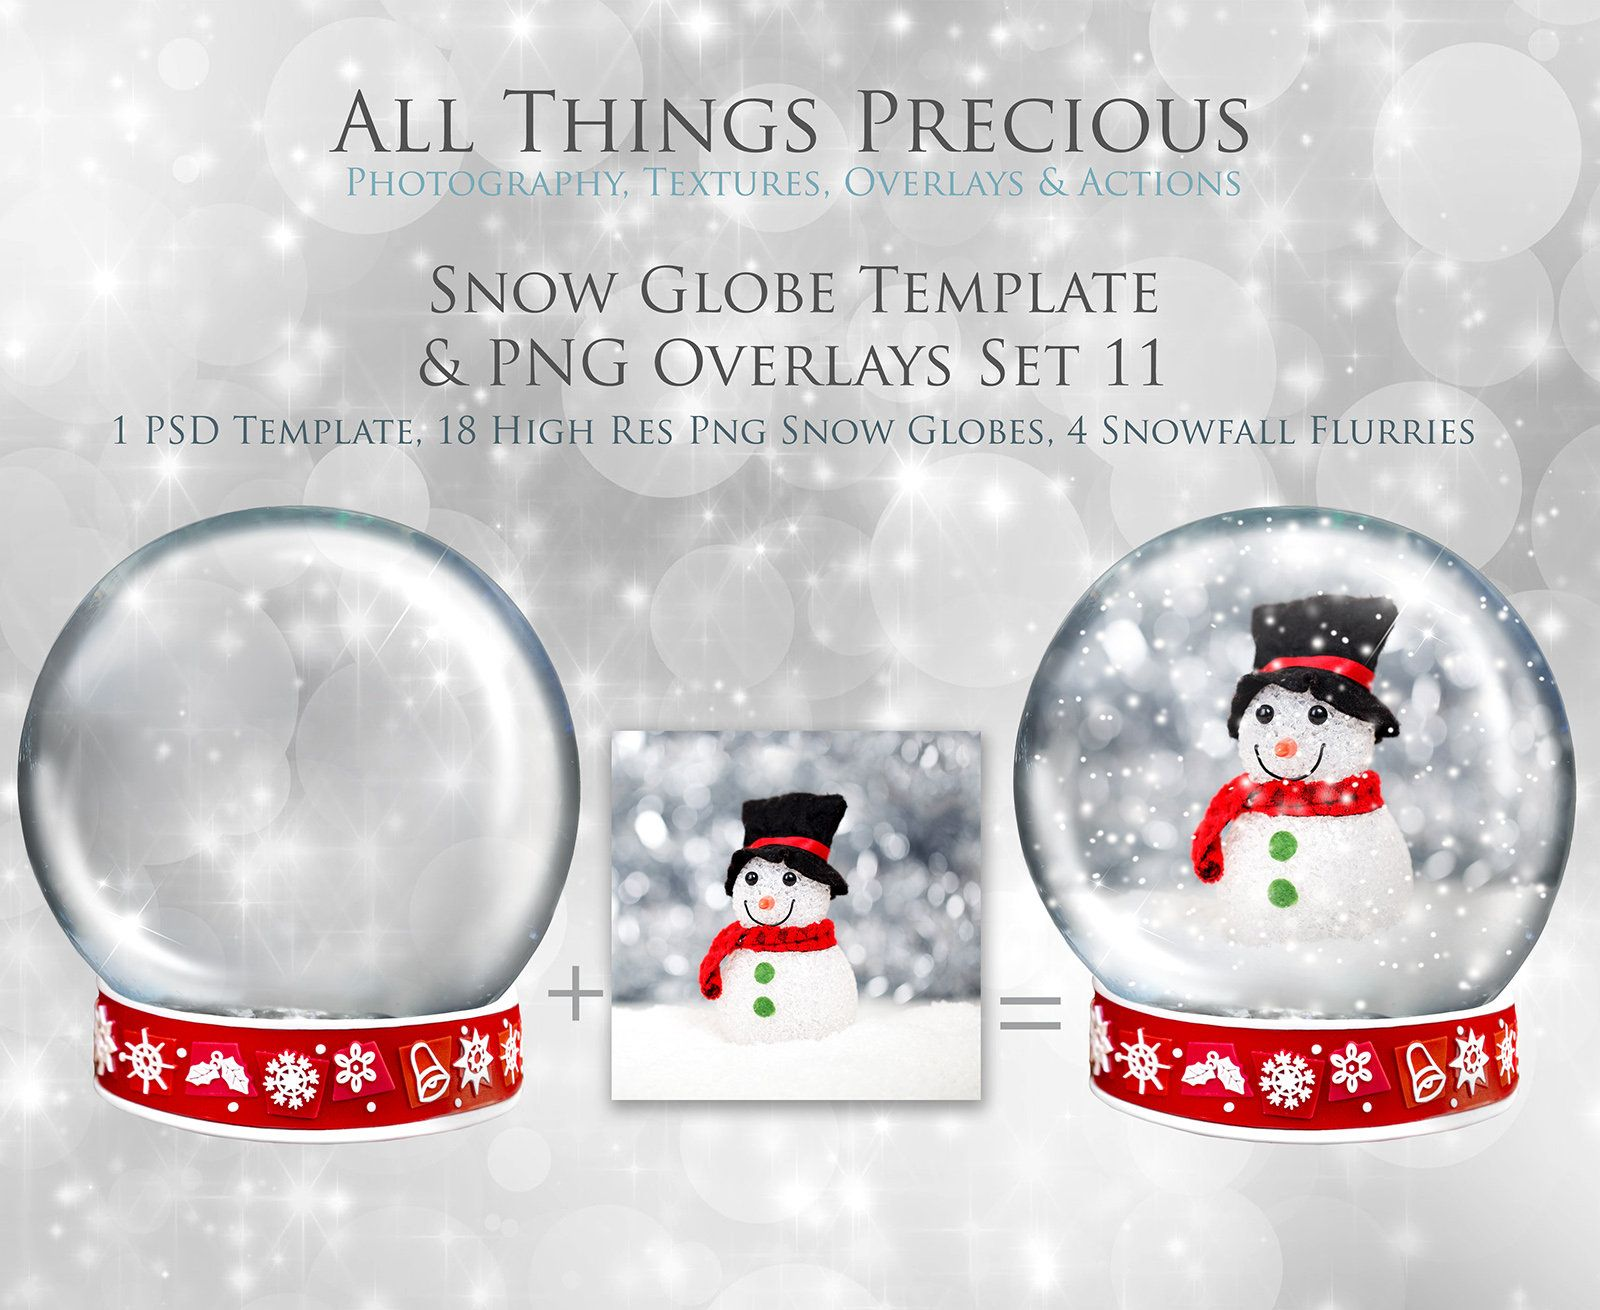 Christmas Snow Globe Png Overlays And Psd Template No 11 Etsy Christmas Snow Globes Snow Globes Photoshop Overlays